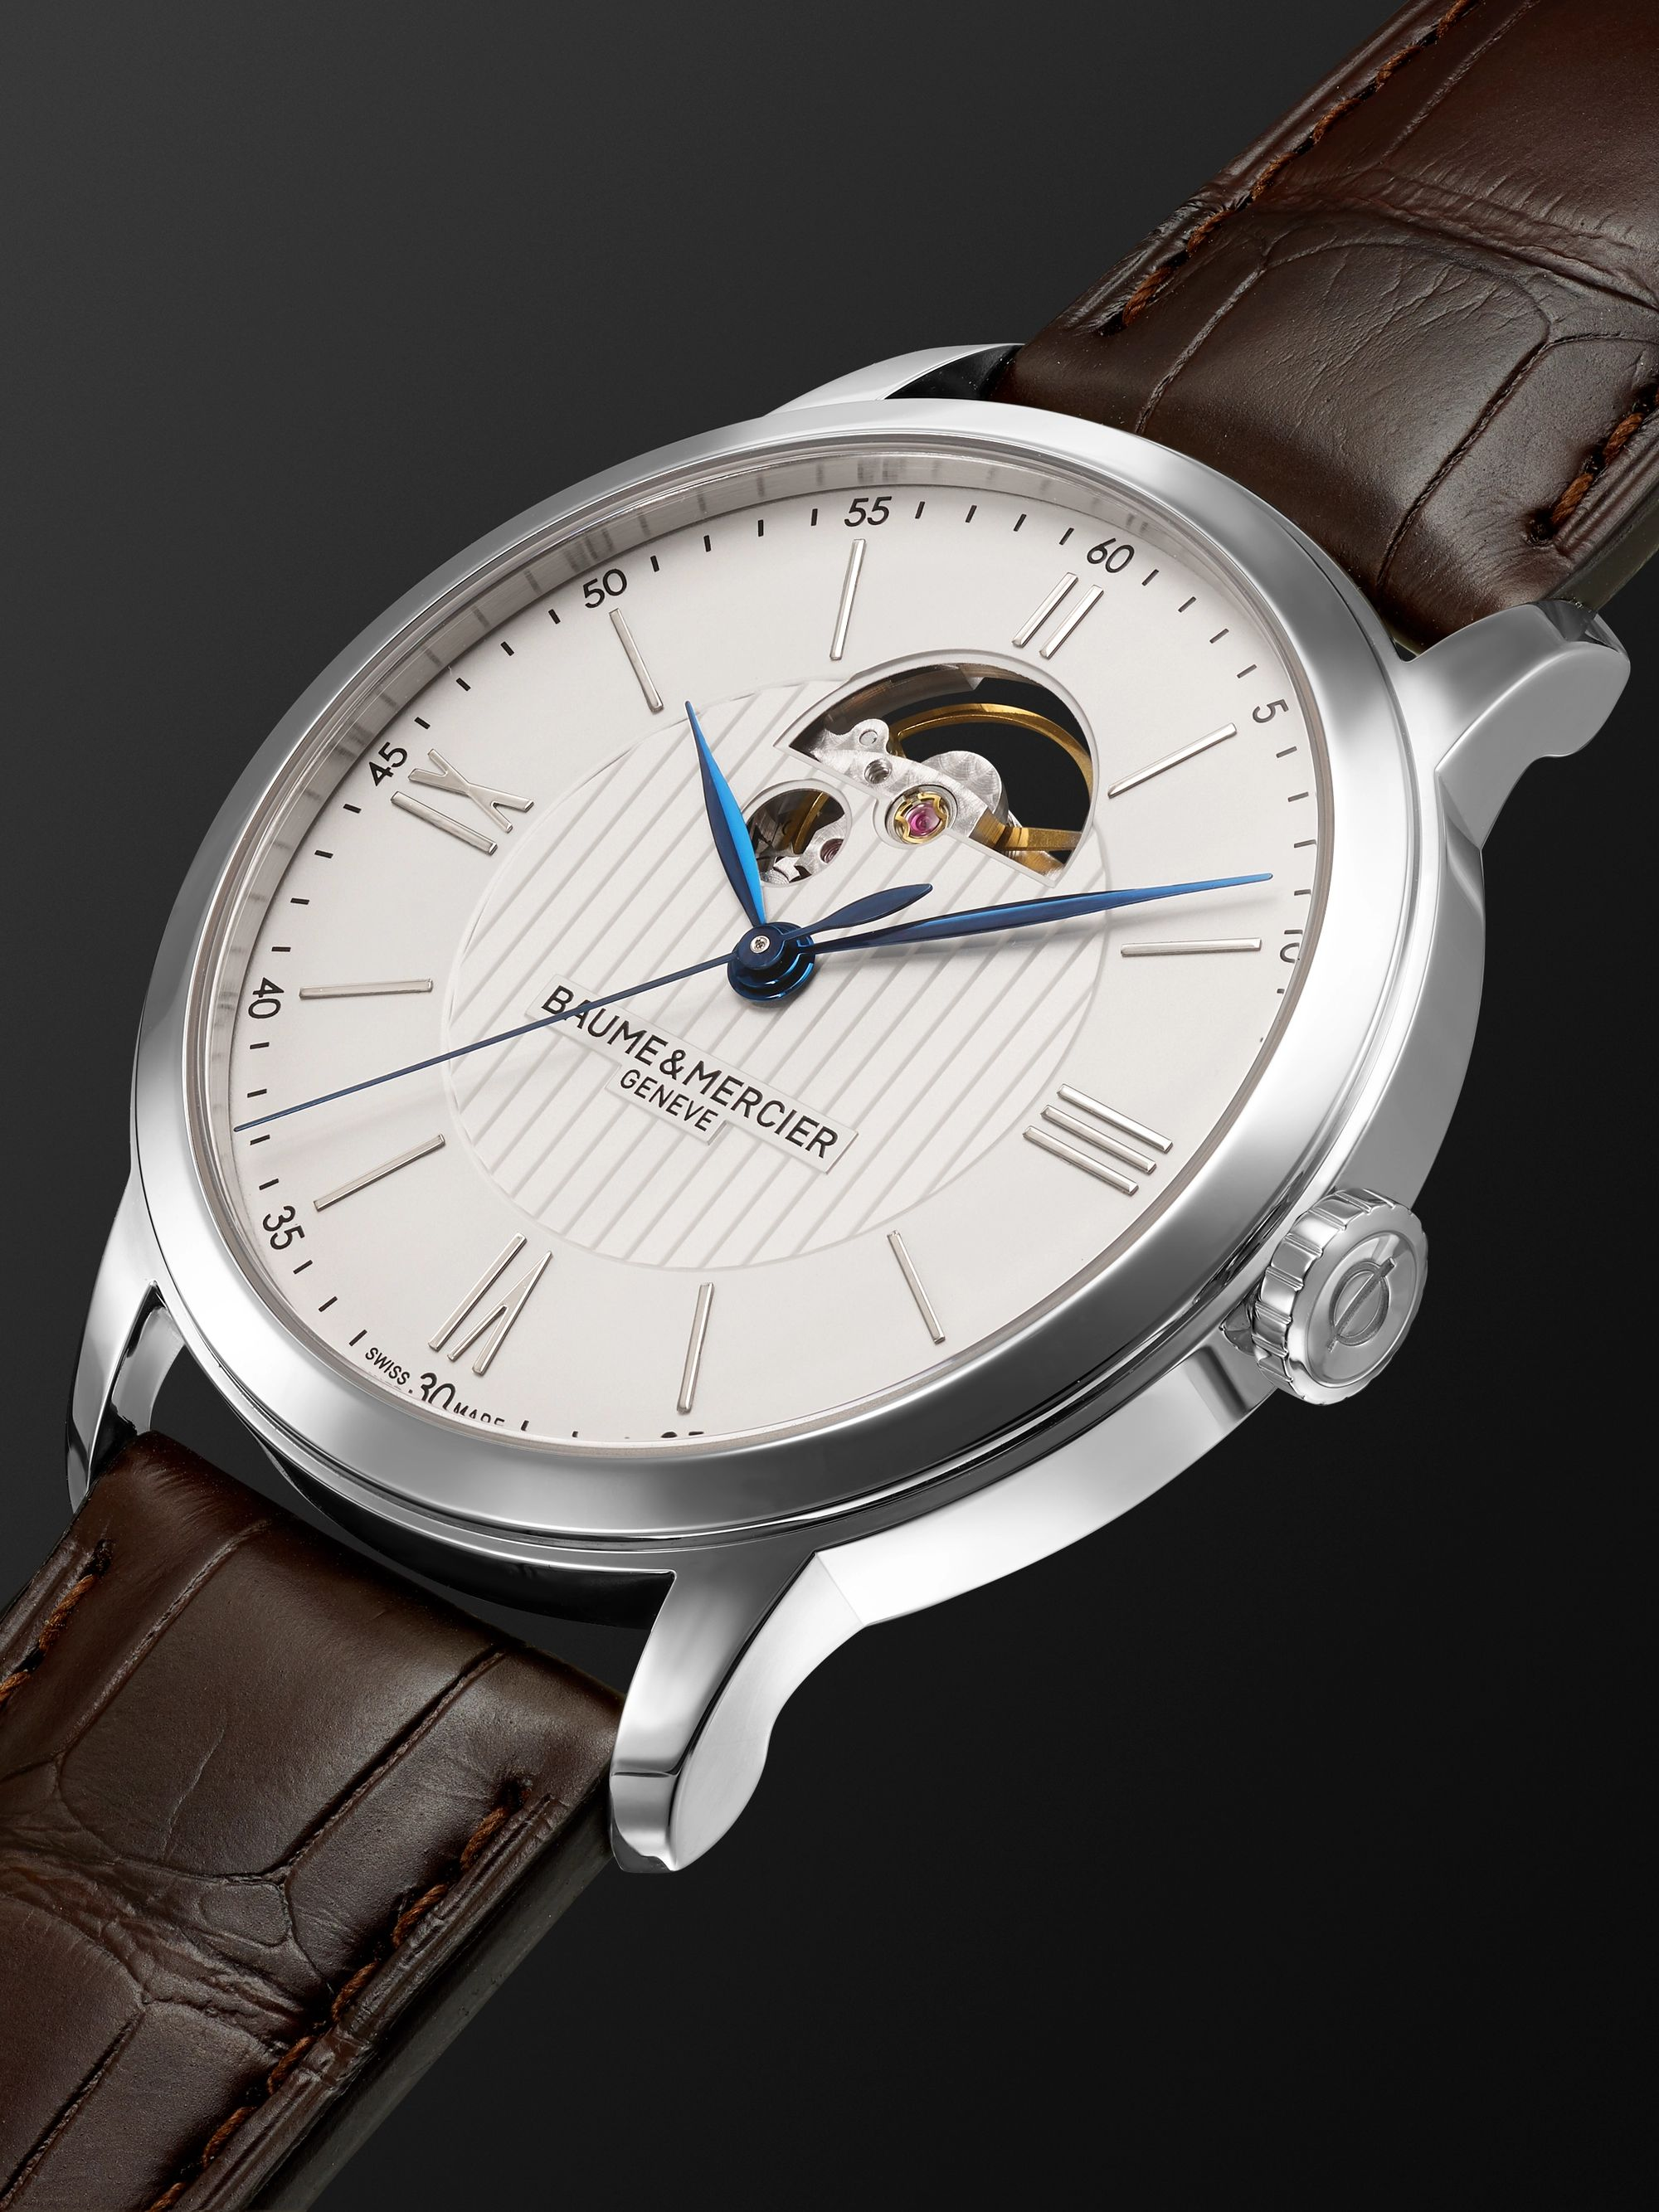 Baume & Mercier Classima Automatic 42mm Stainless Steel and Alligator Watch, Ref. No. MOA10524